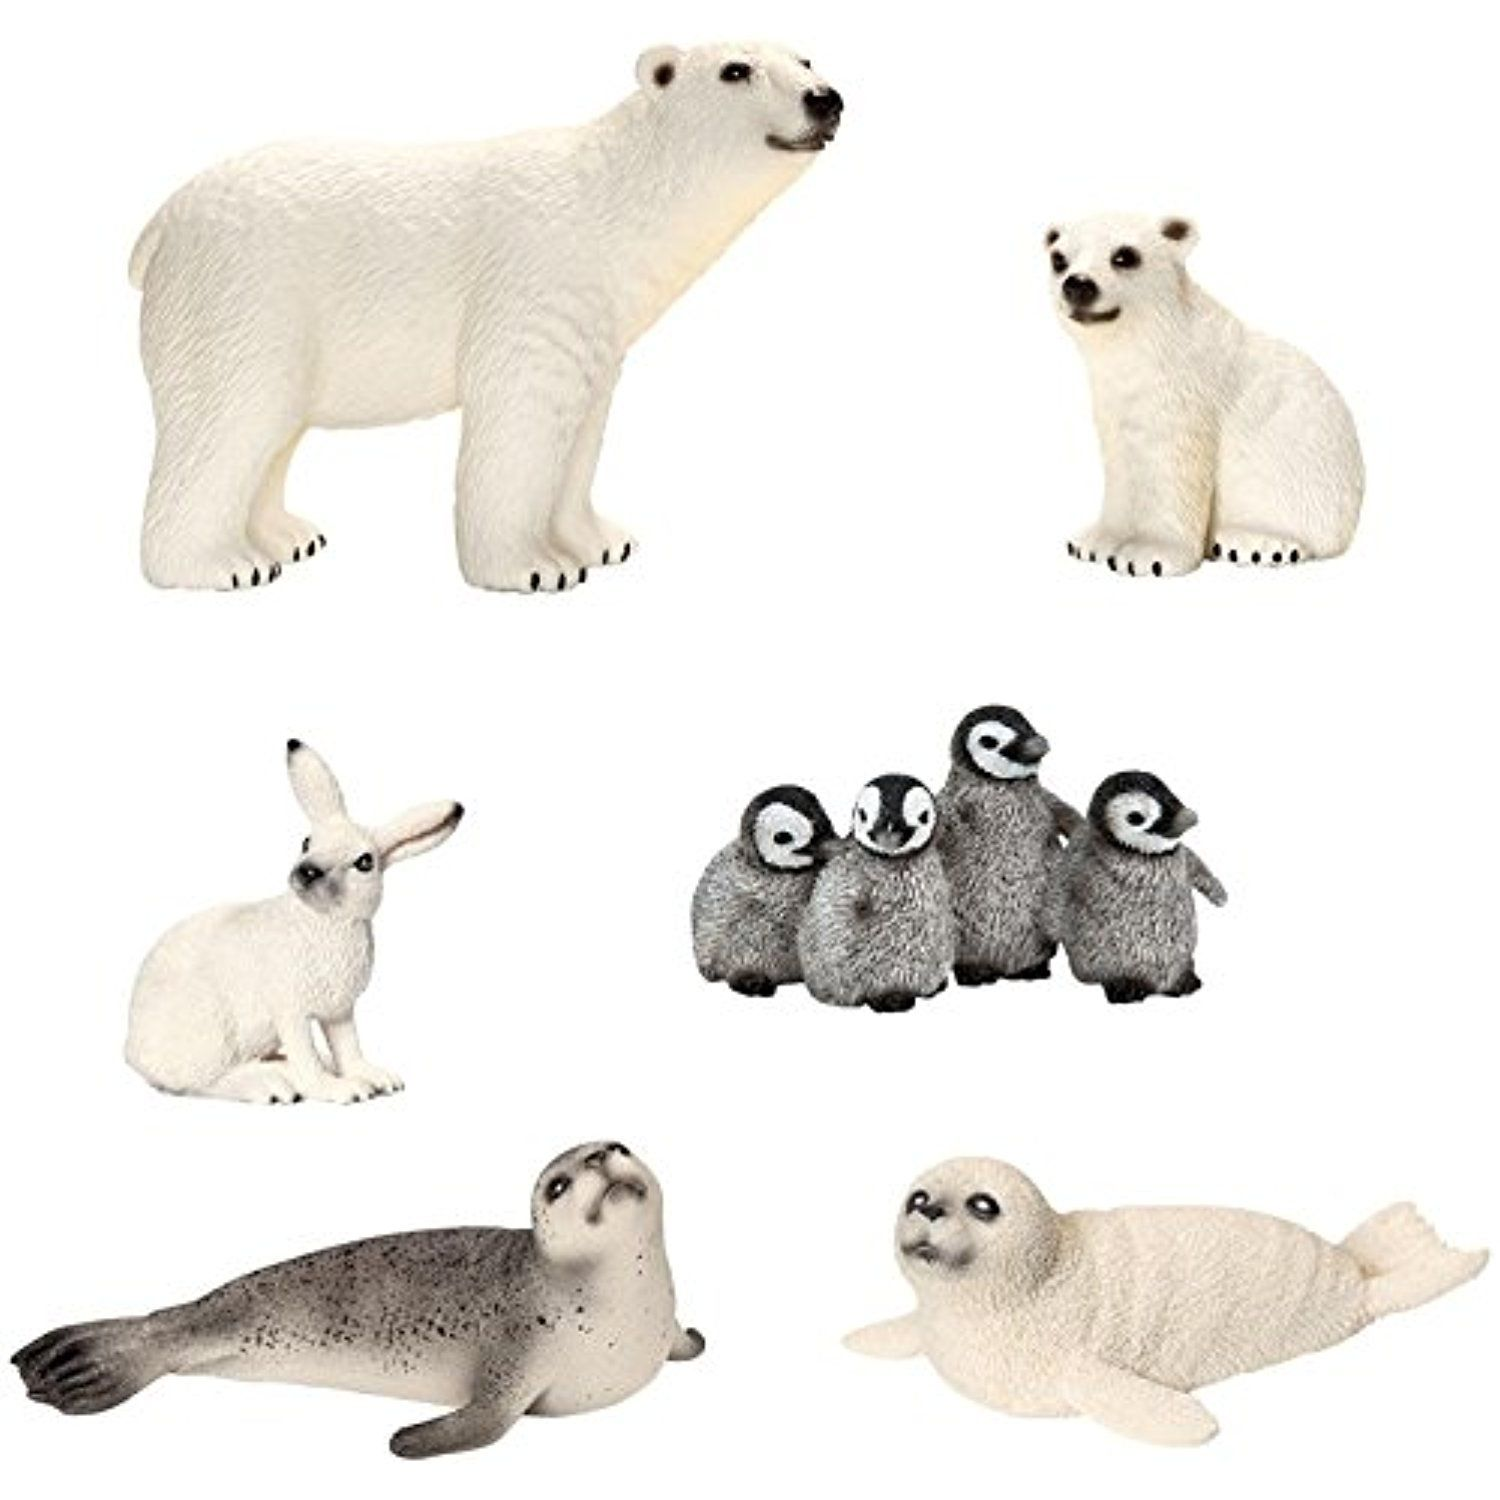 Schleich World of Nature Arctic Animals Find out more